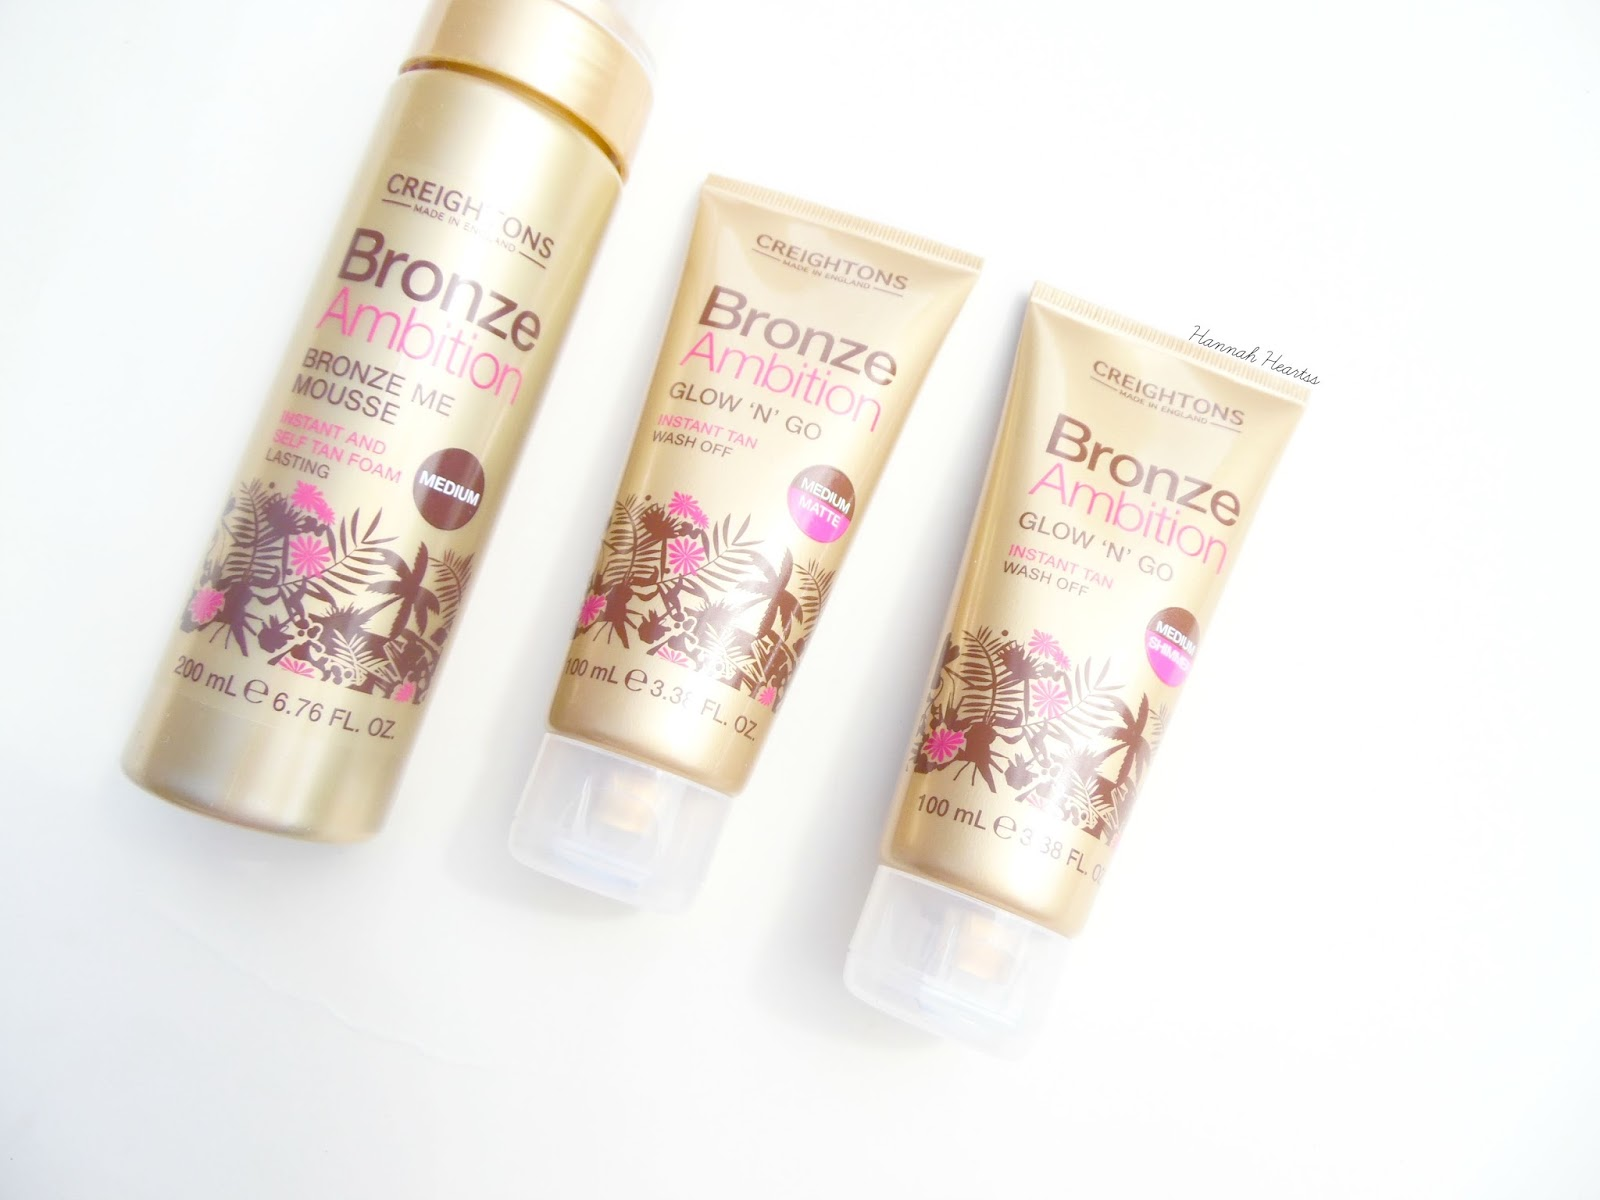 Bronze Ambition Tanning Mousse & Wash Off Tan